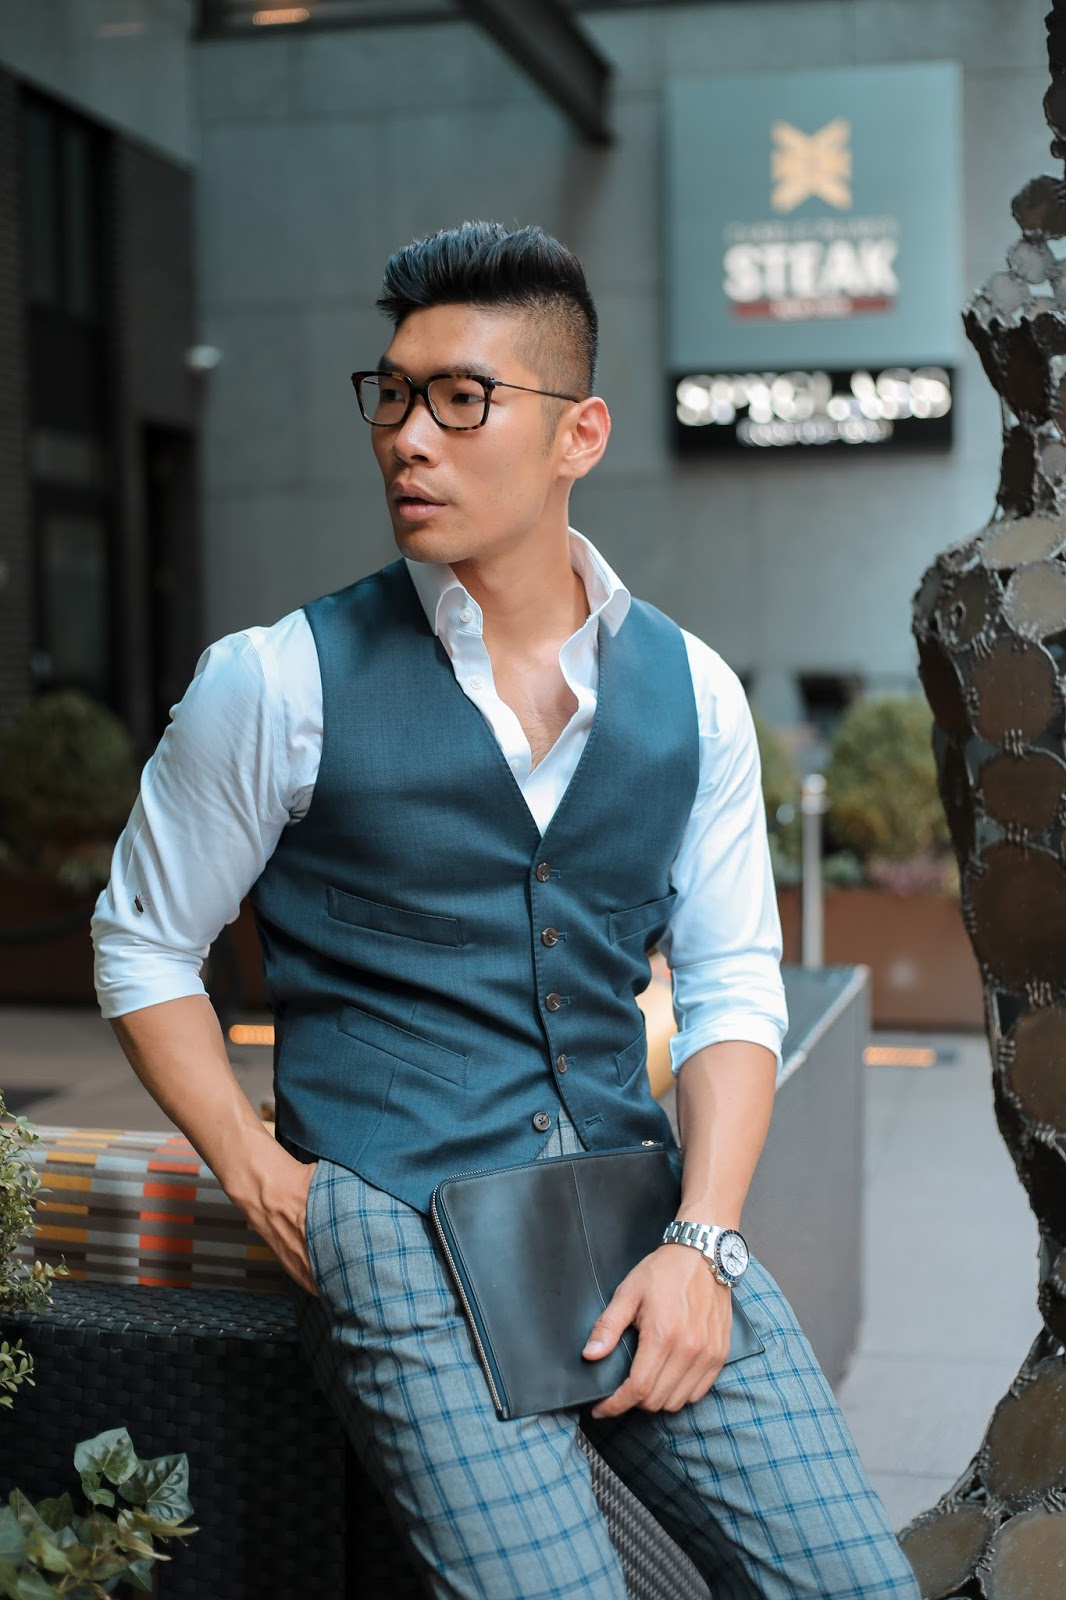 Men's Summer Style, How to Pattern Suit, Thom Browne Eyeglasses, Suede Loafers, Tissot, Menswear Levitate Style, Leo Chan